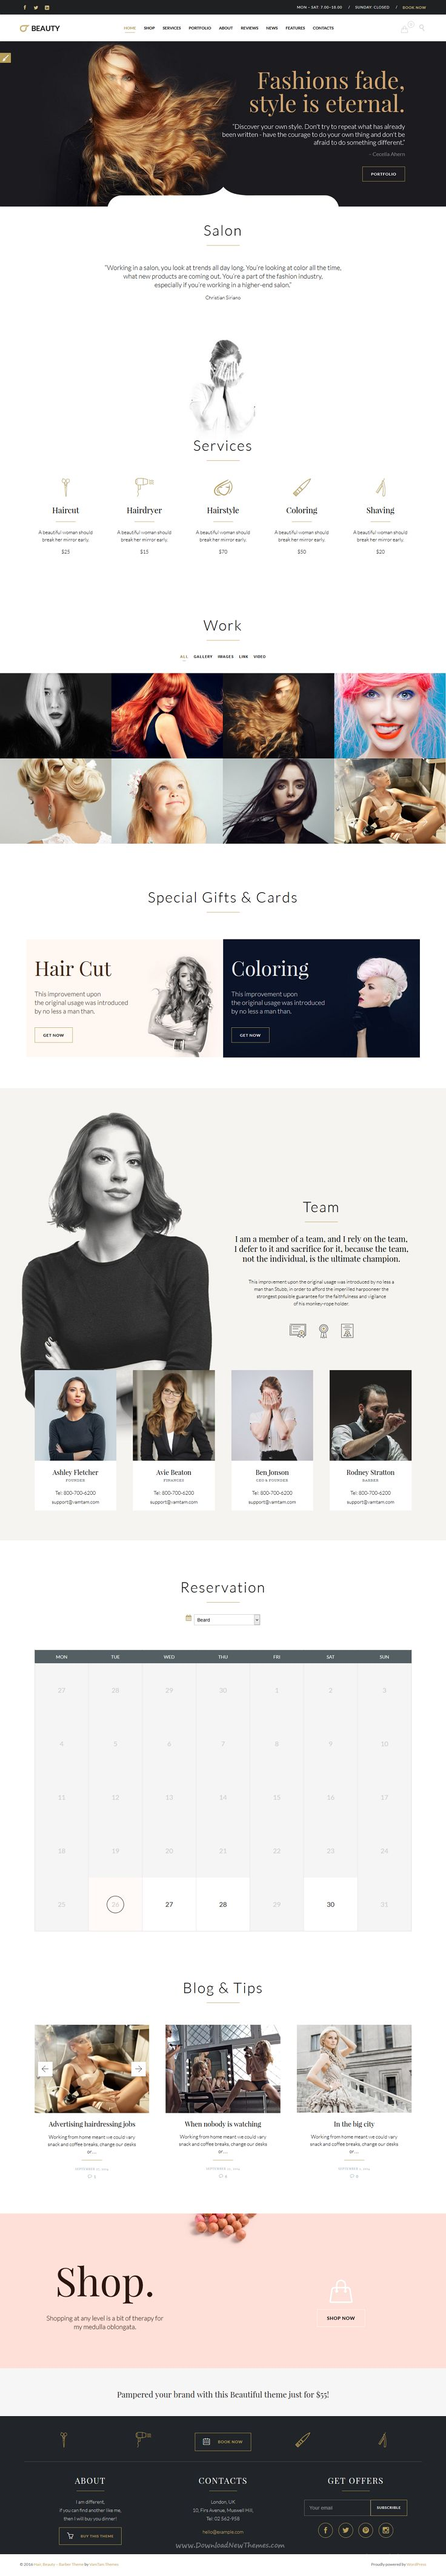 Beauty Hair Salon is wonderful multipurpose 5 in 1 #WordPress Theme for Hair #Salon , Barber Shop or Beauty Salon website download now➝ https://themeforest.net/item/beauty-hair-salon-theme-for-hair-salon-barber-shop-and-beauty-salon/15344439?ref=Datasata